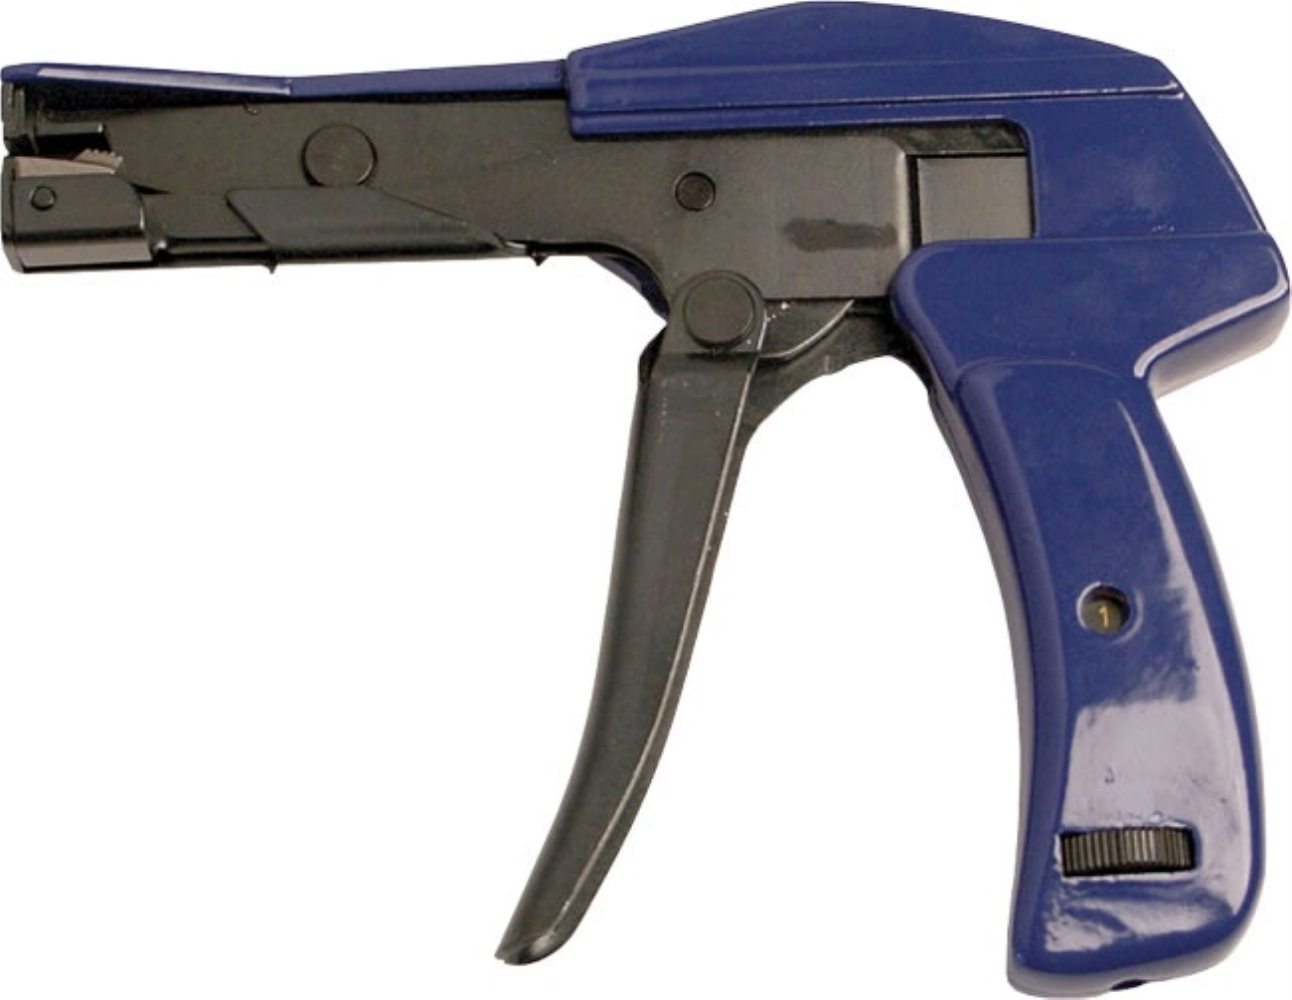 photo of CABLE TIE GUN, HEAVY DUTY, PLATINUM TOOLS  10200C